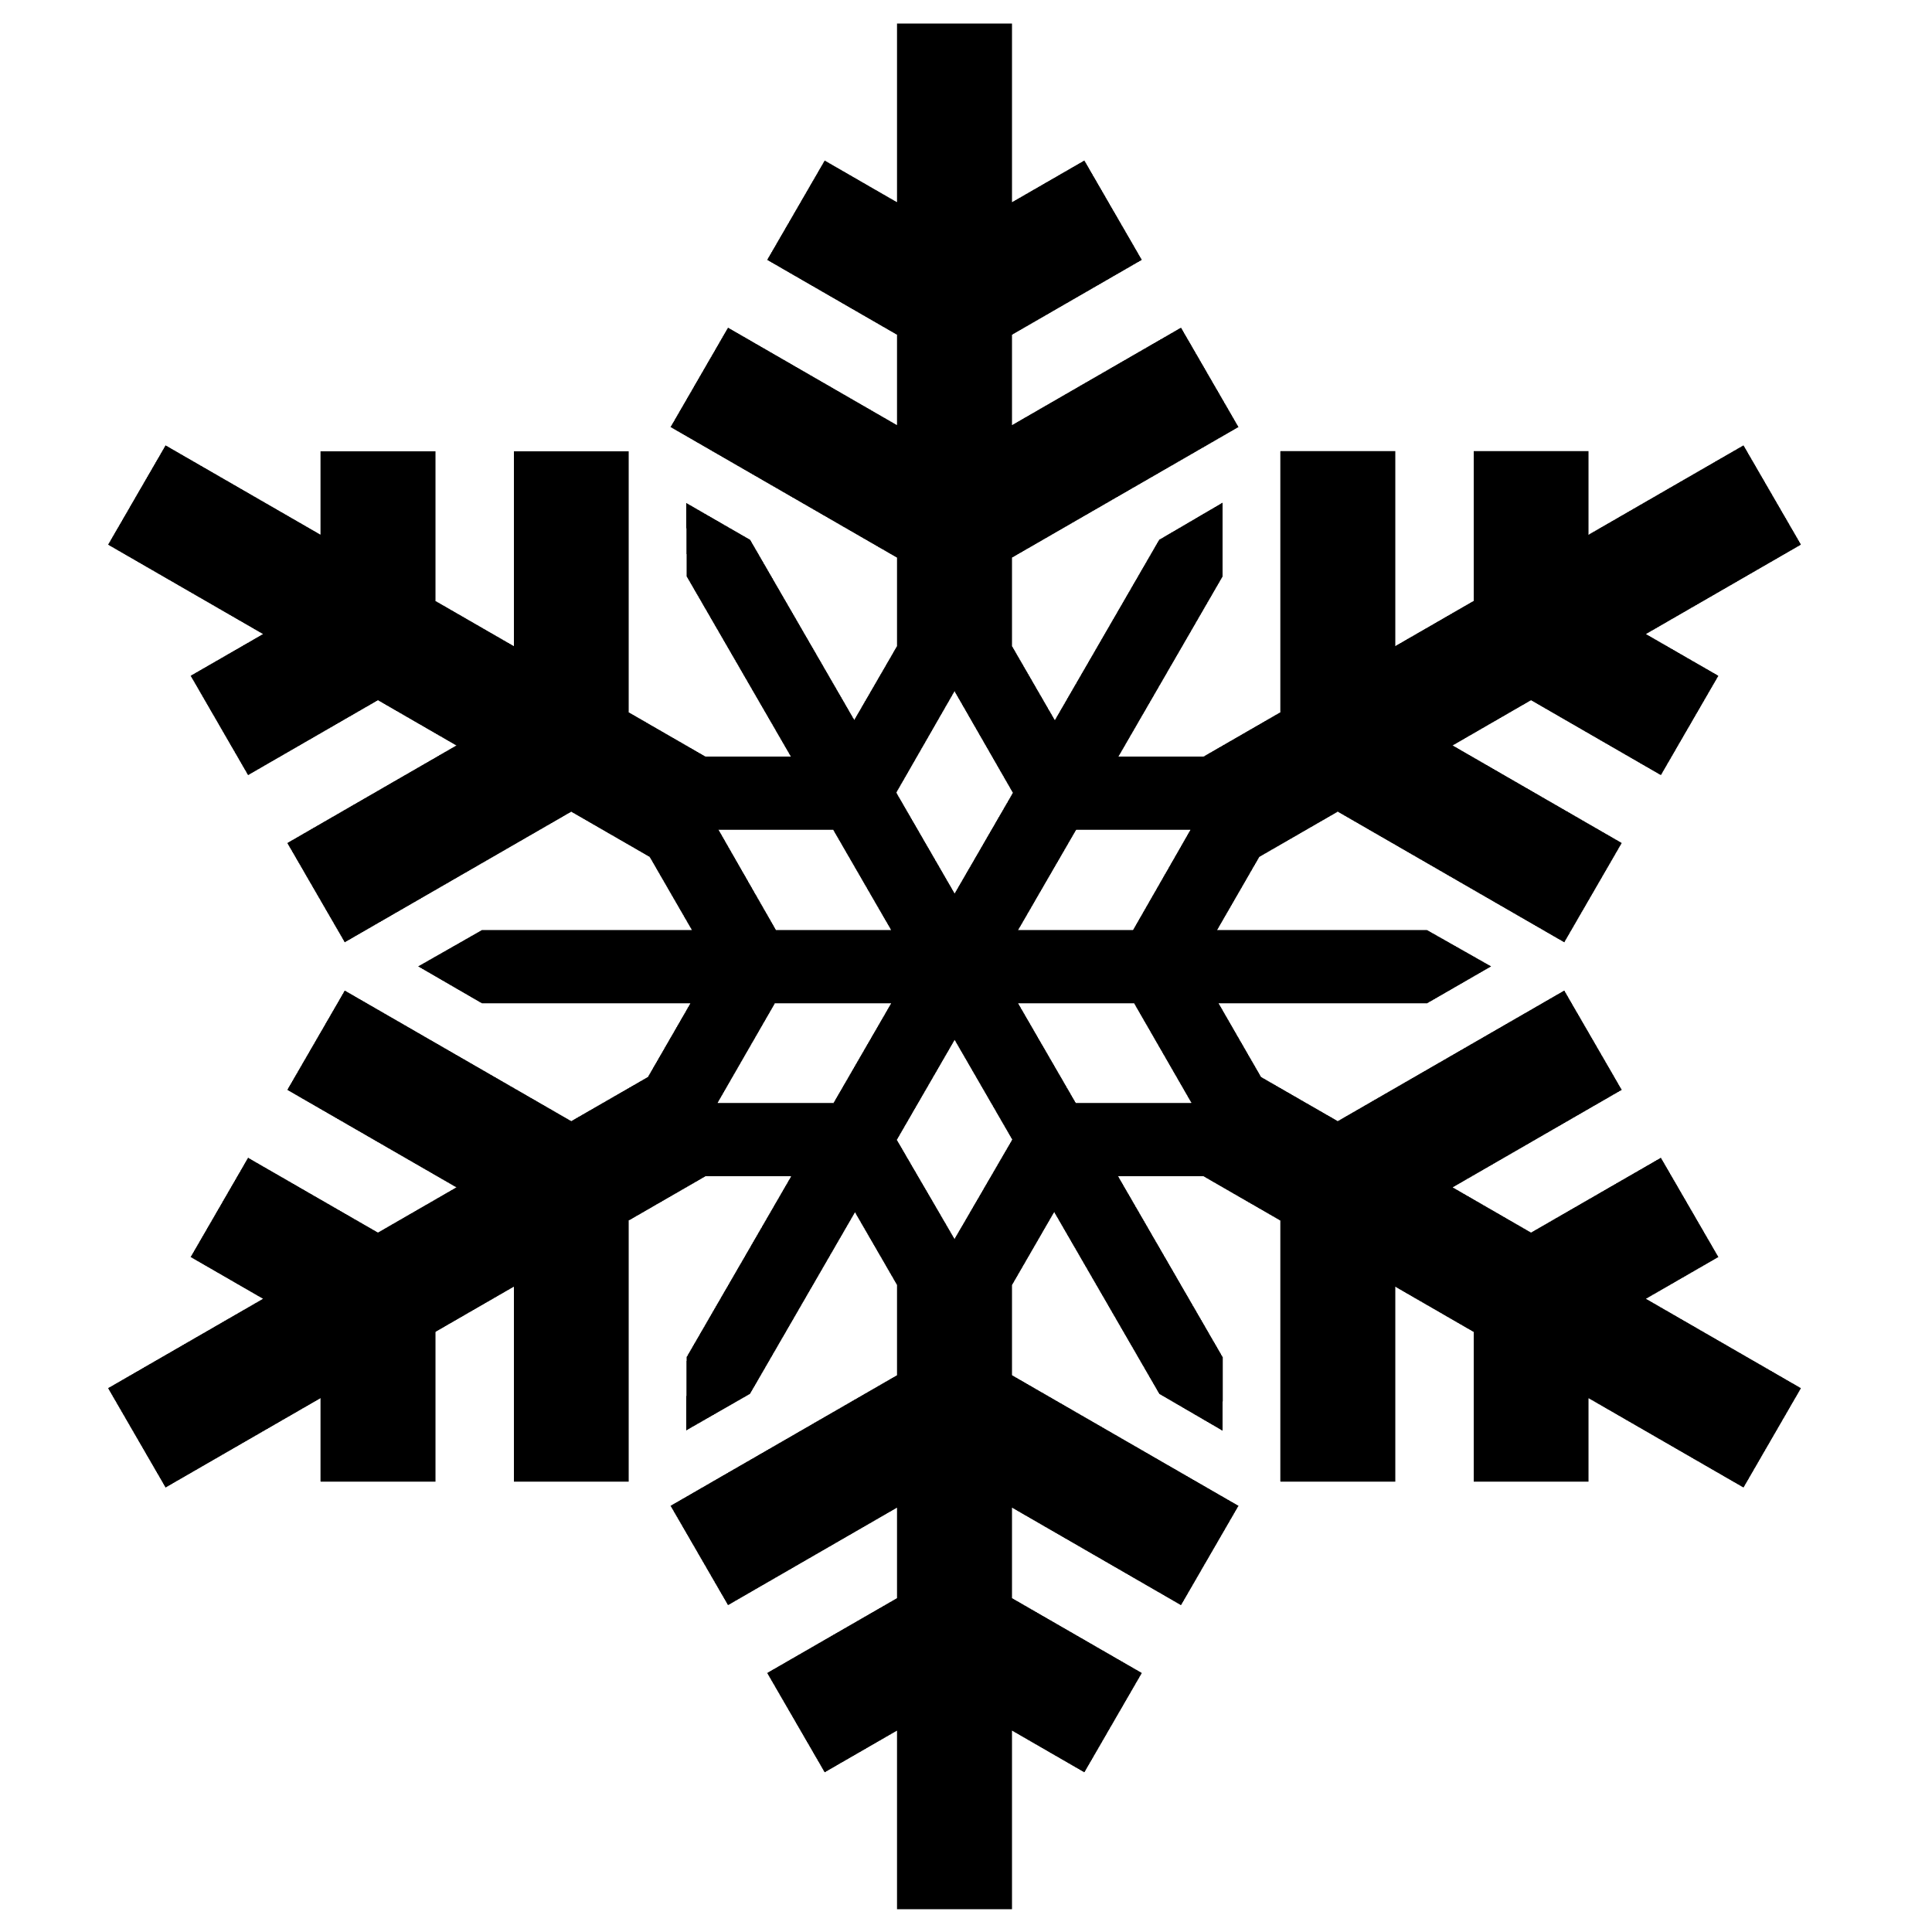 Free Snowflake Icon Transparent, Download Free Clip Art.